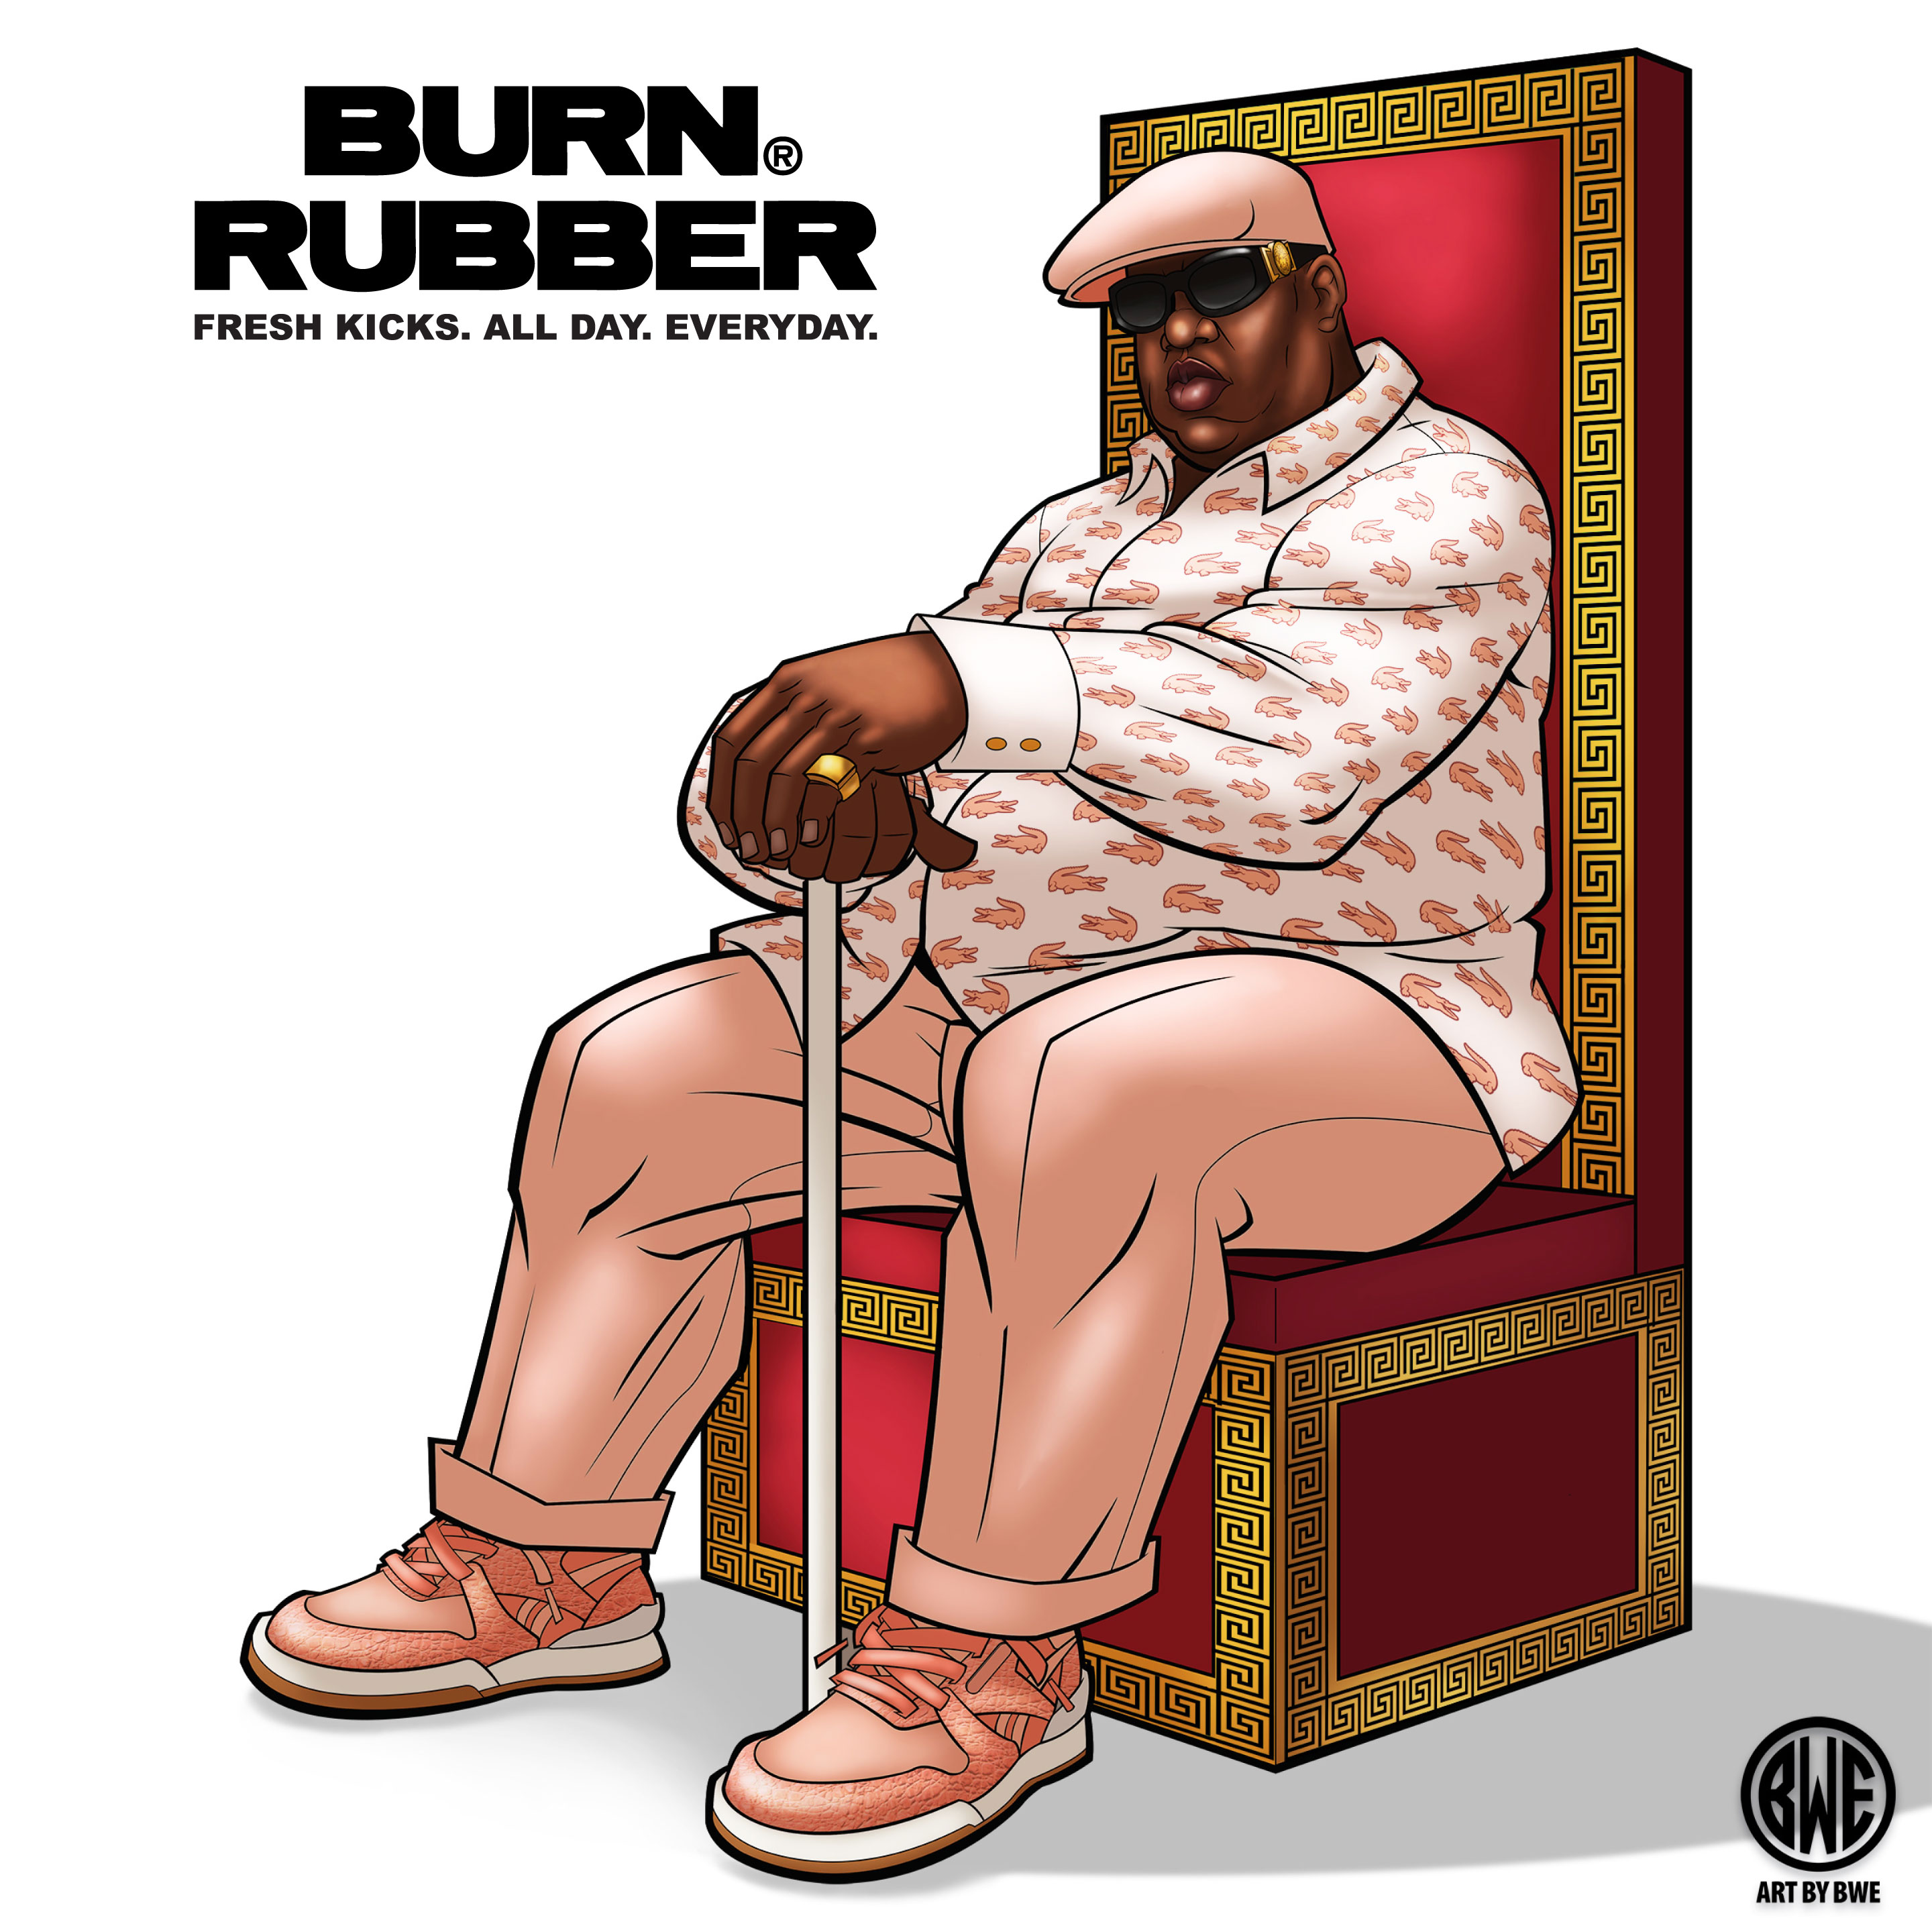 Burn Rubber x Reebok Promo Art